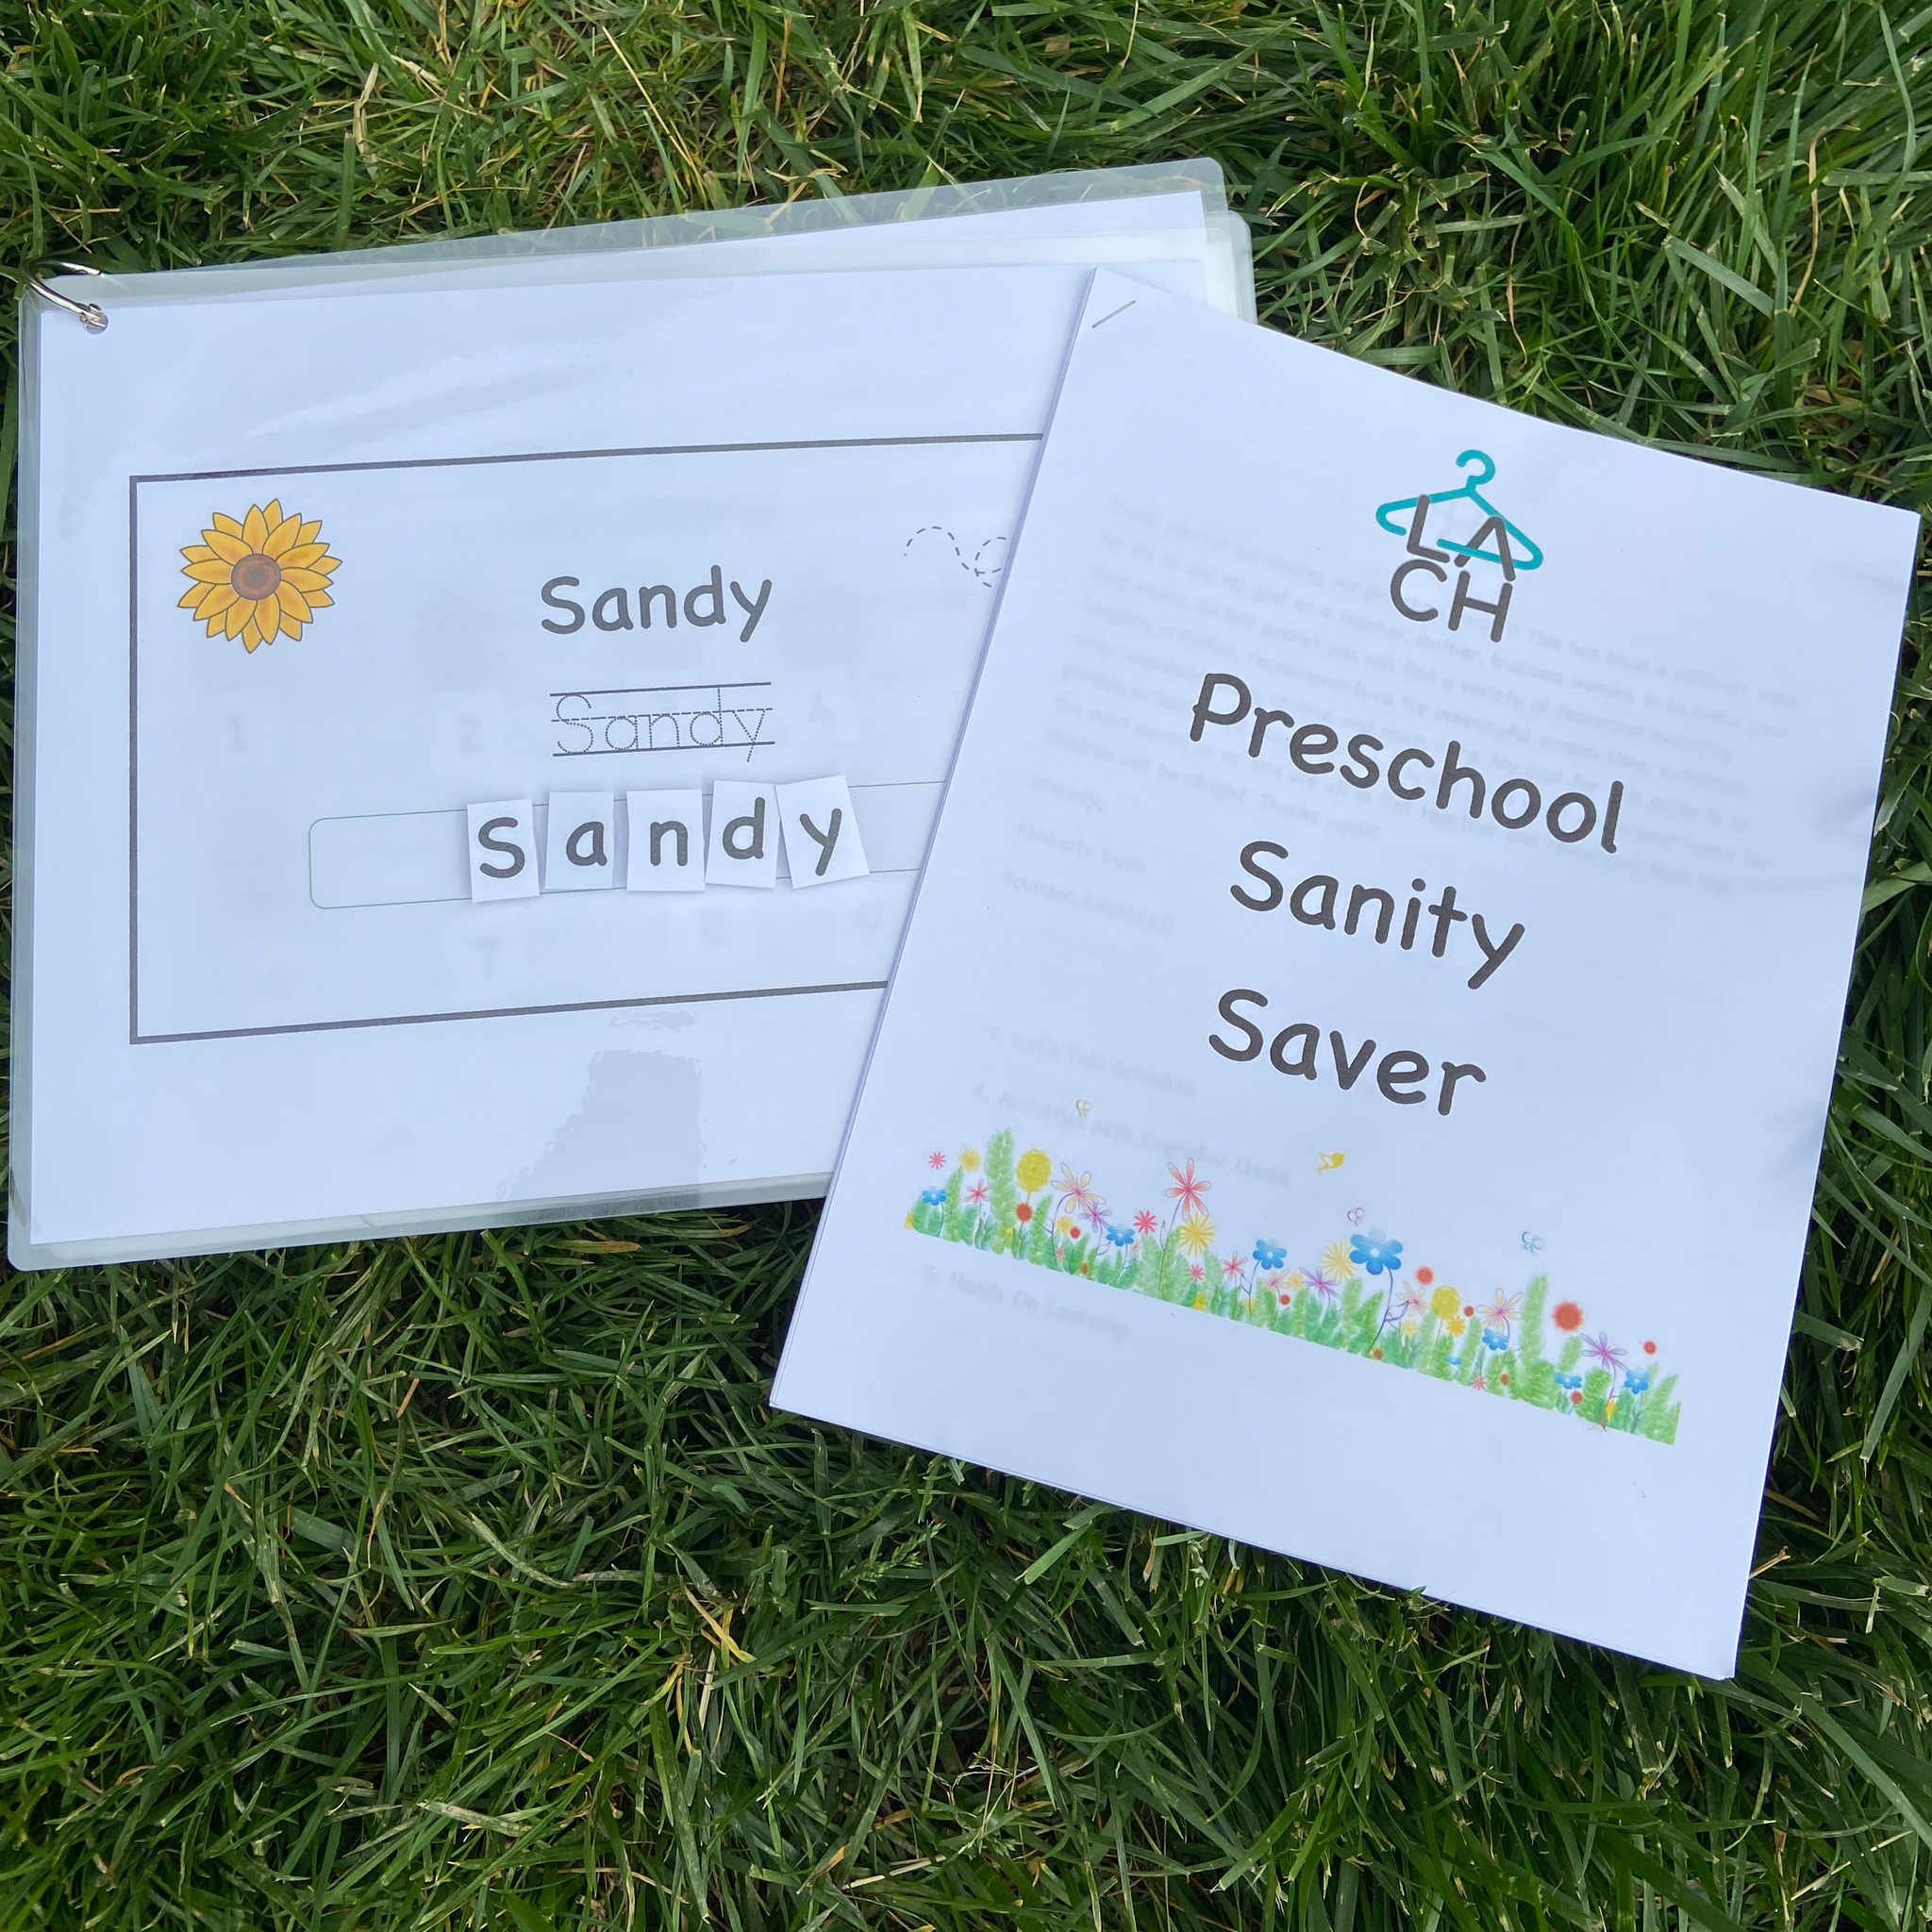 Preschool Sanity Saver